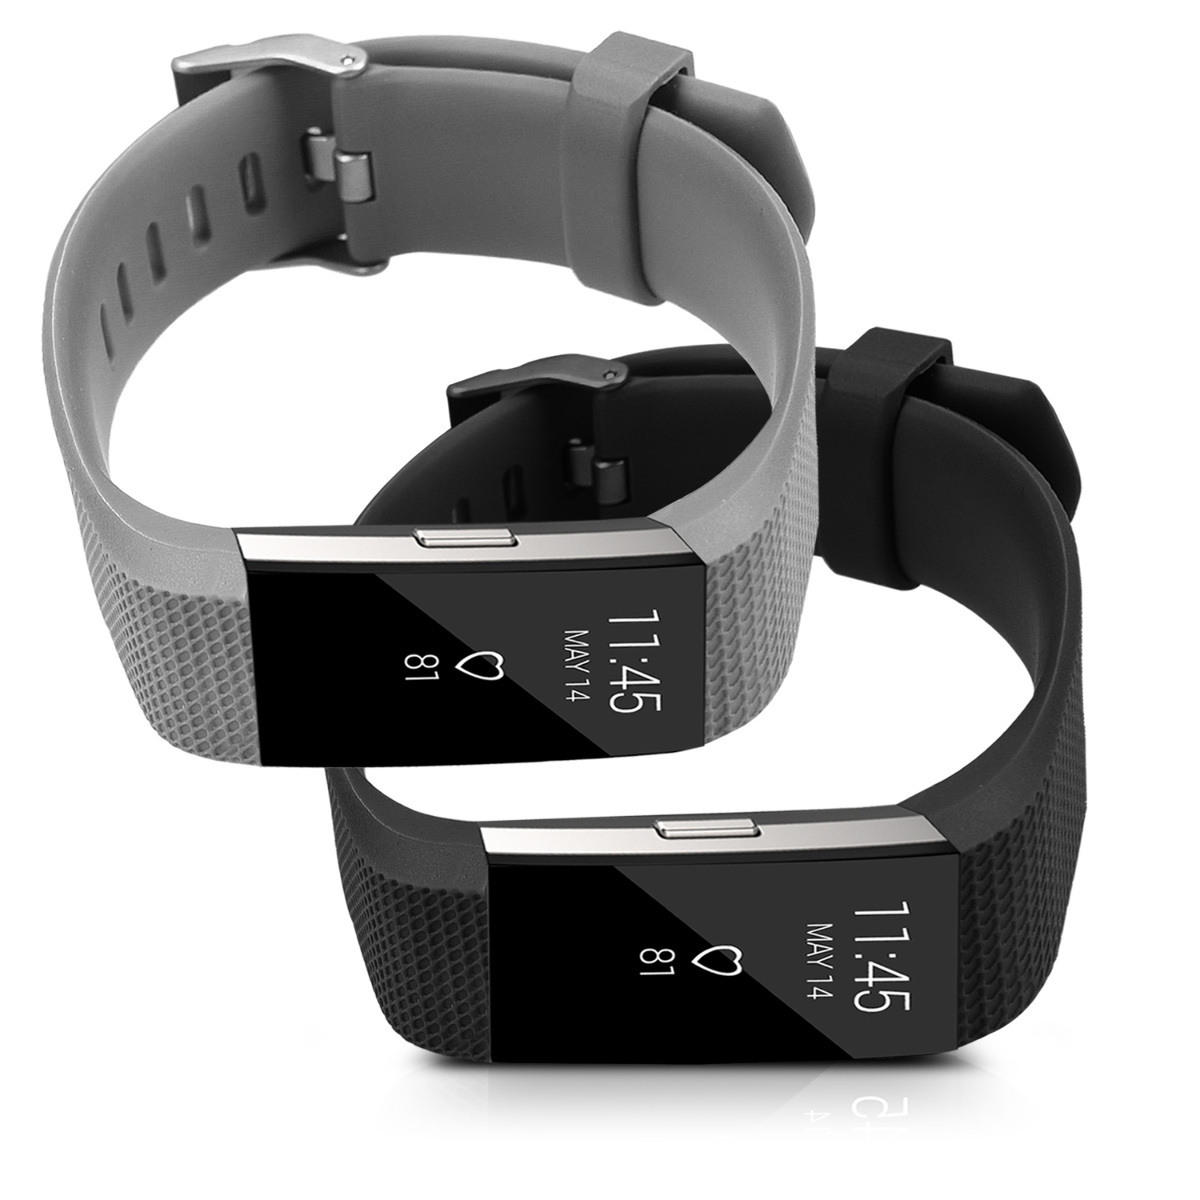 2x silikon ersatzarmband f r fitbit charge 2 fitnessband. Black Bedroom Furniture Sets. Home Design Ideas